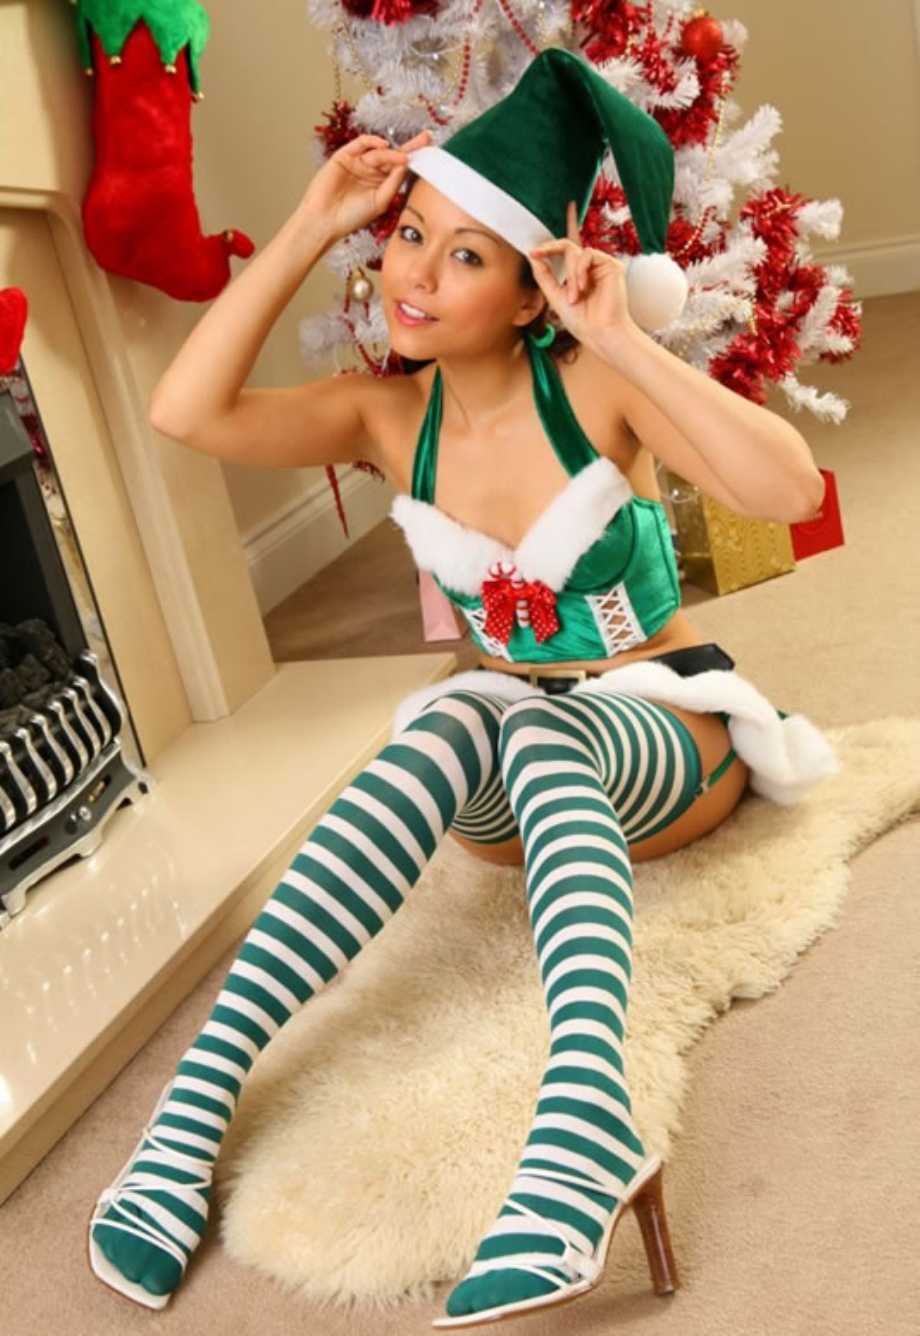 Christmas elf pussy pic porncraft film